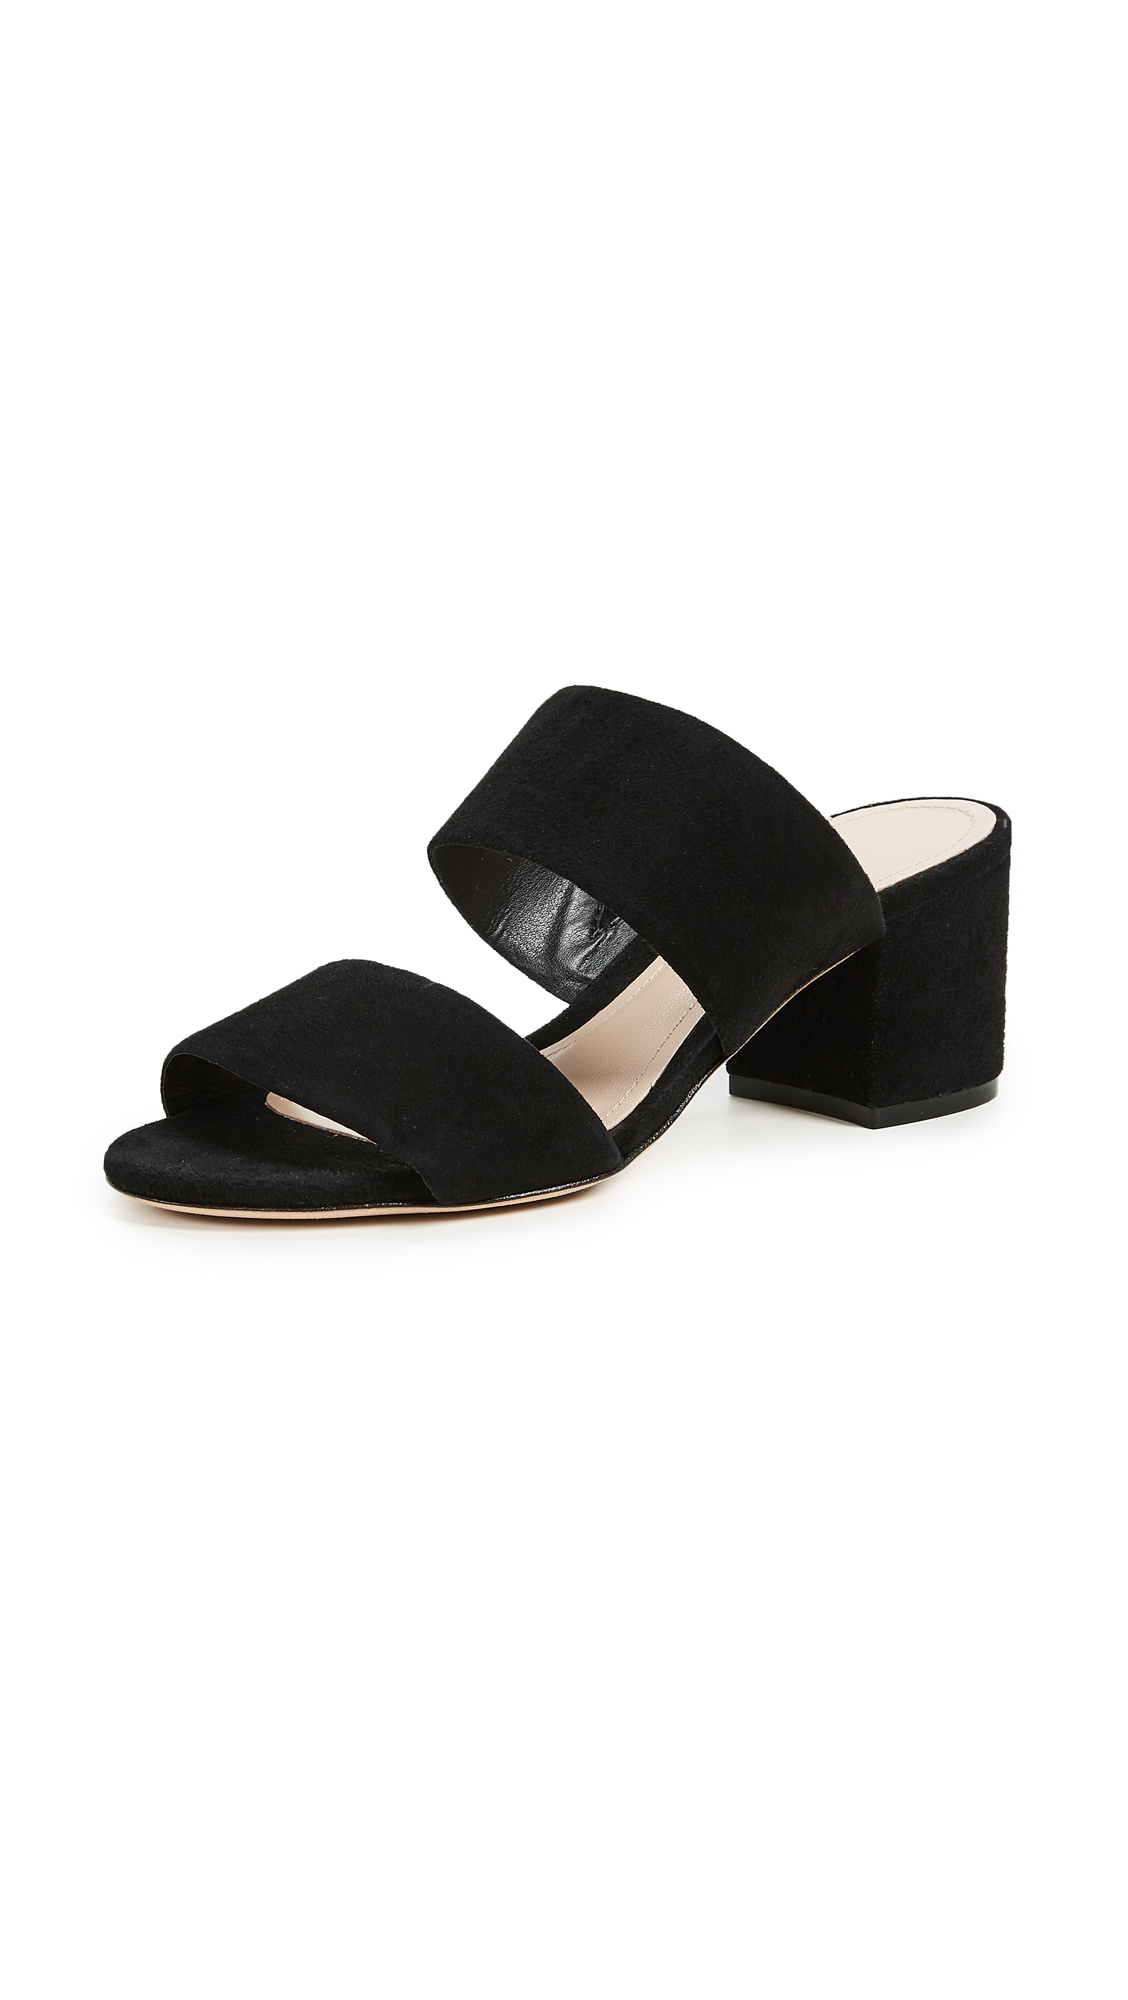 Photo of Schutz Rashne Double Strap Sandals - buy Schutz footwear online